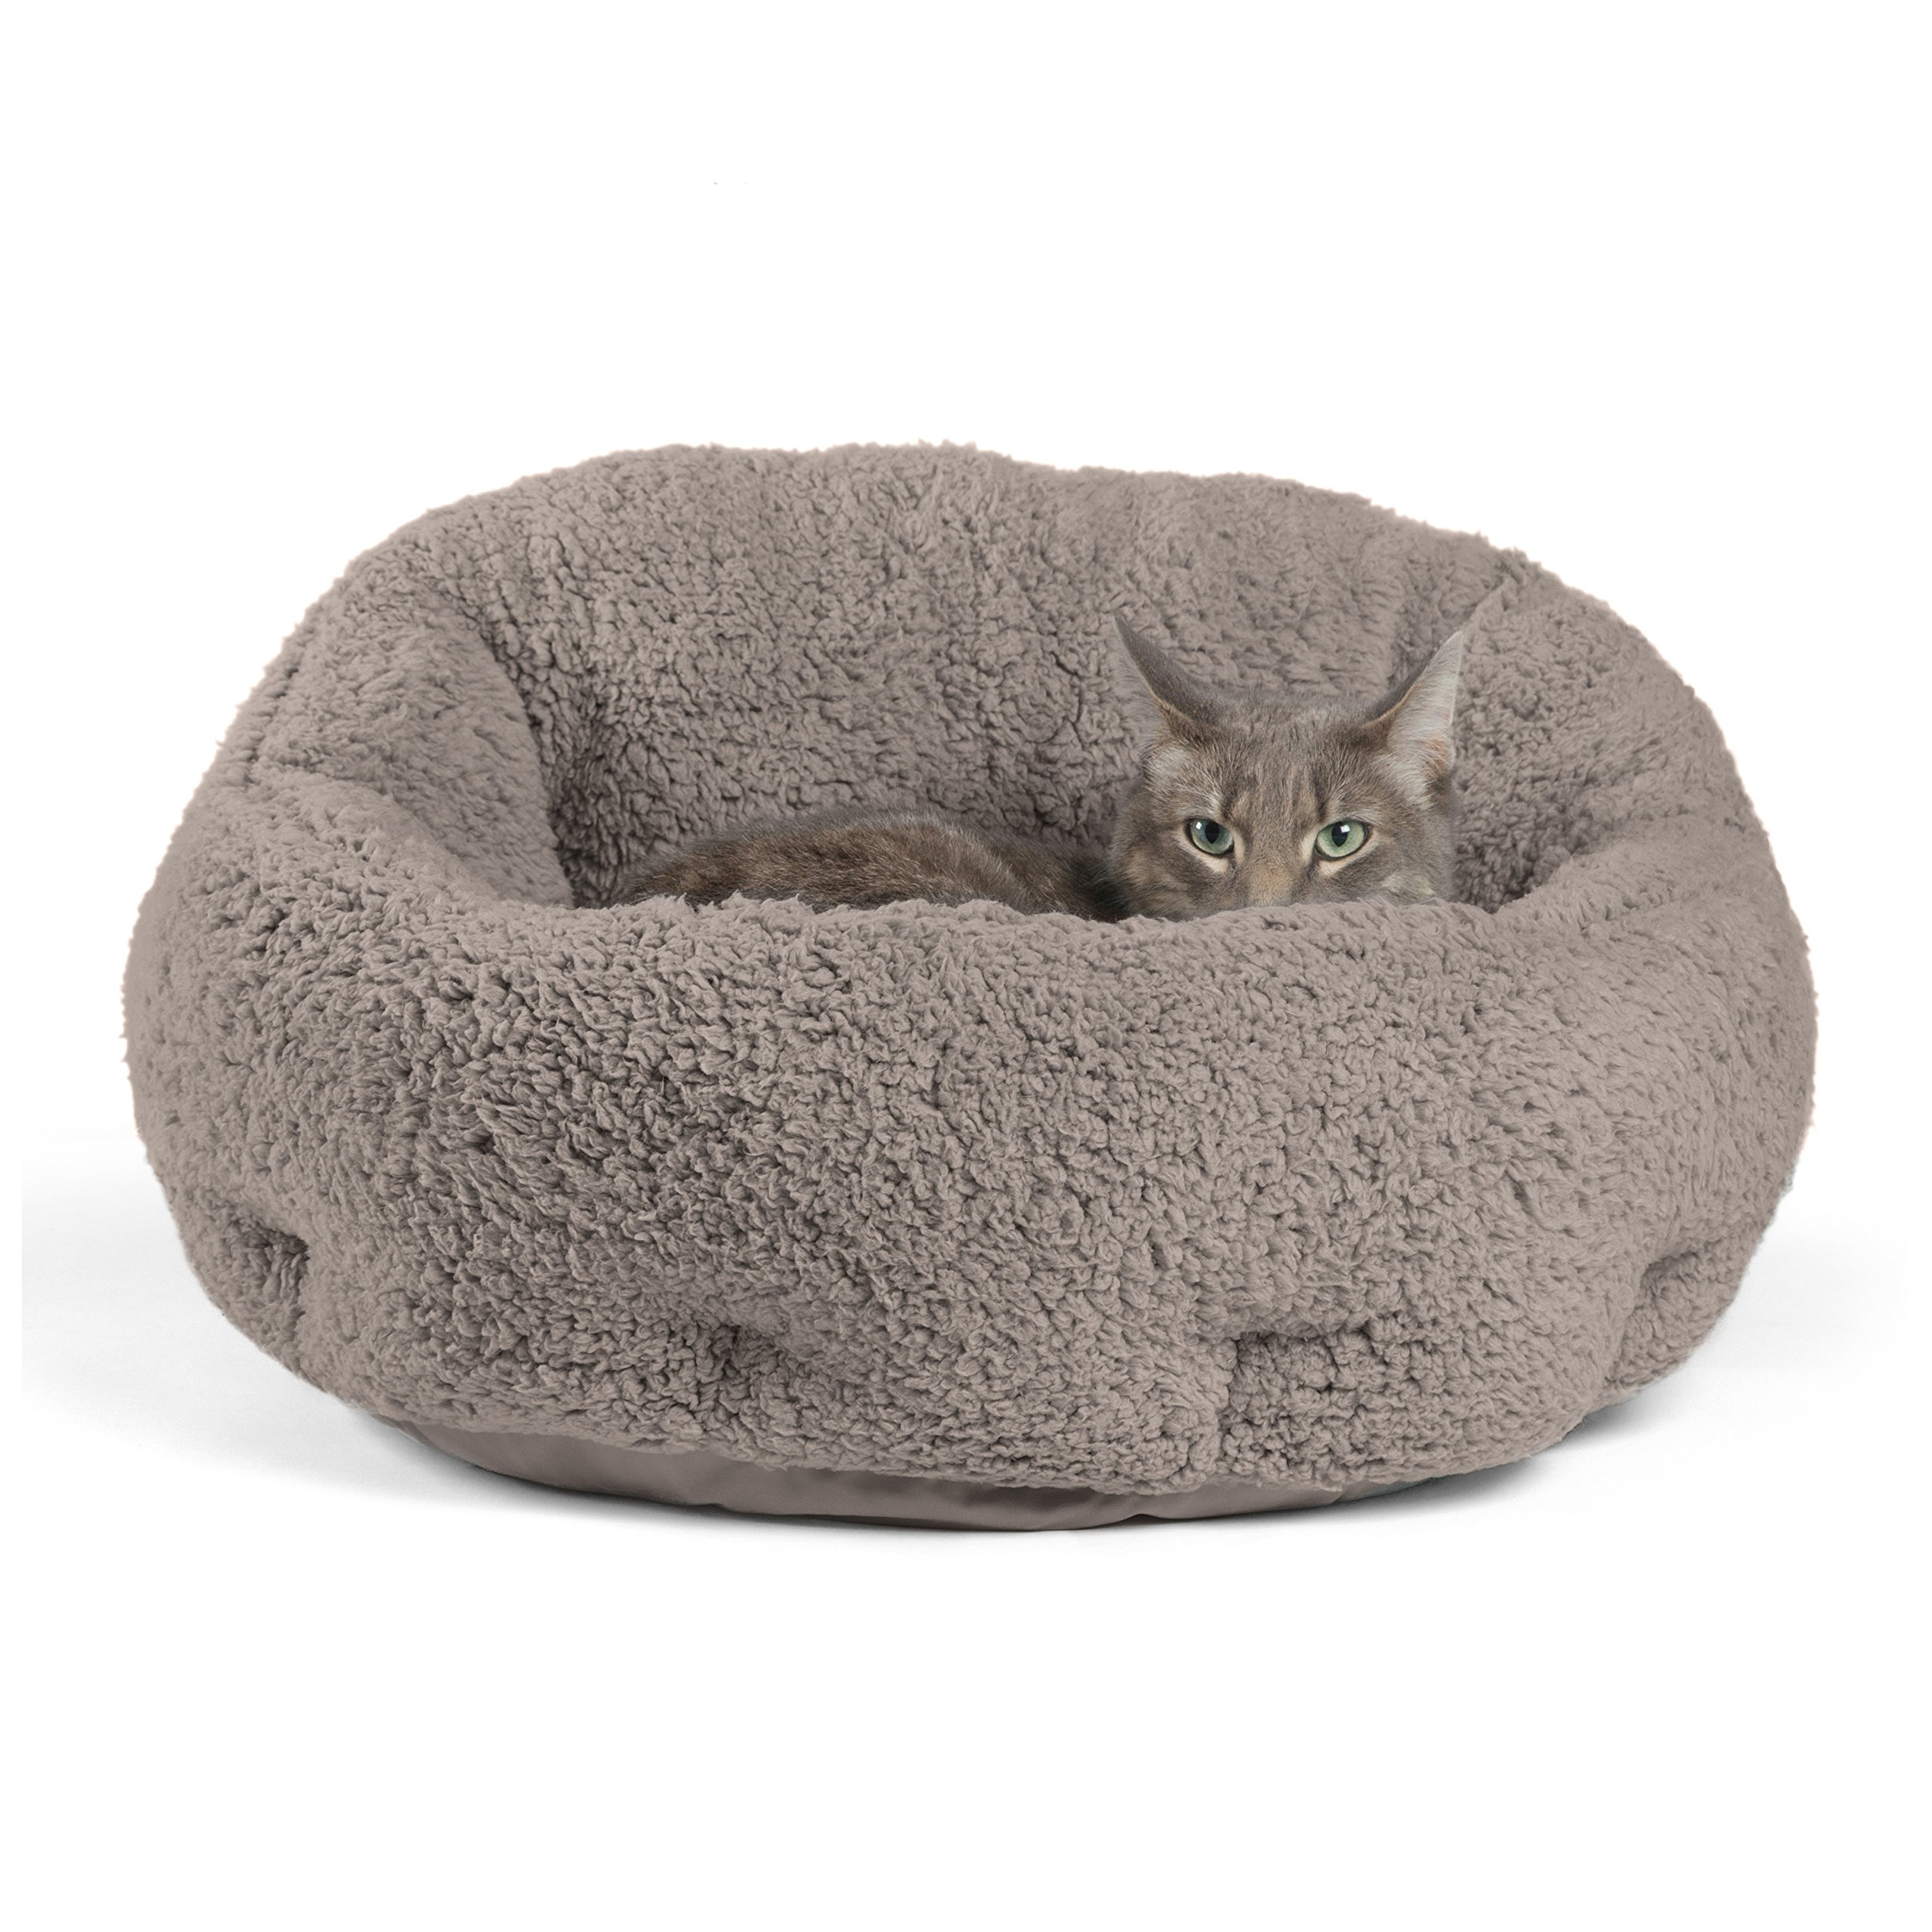 Best Friends by Sheri OrthoComfort Deep Dish Cuddler (20x20x12) - Self-Warming Cat and Dog Bed, Gray